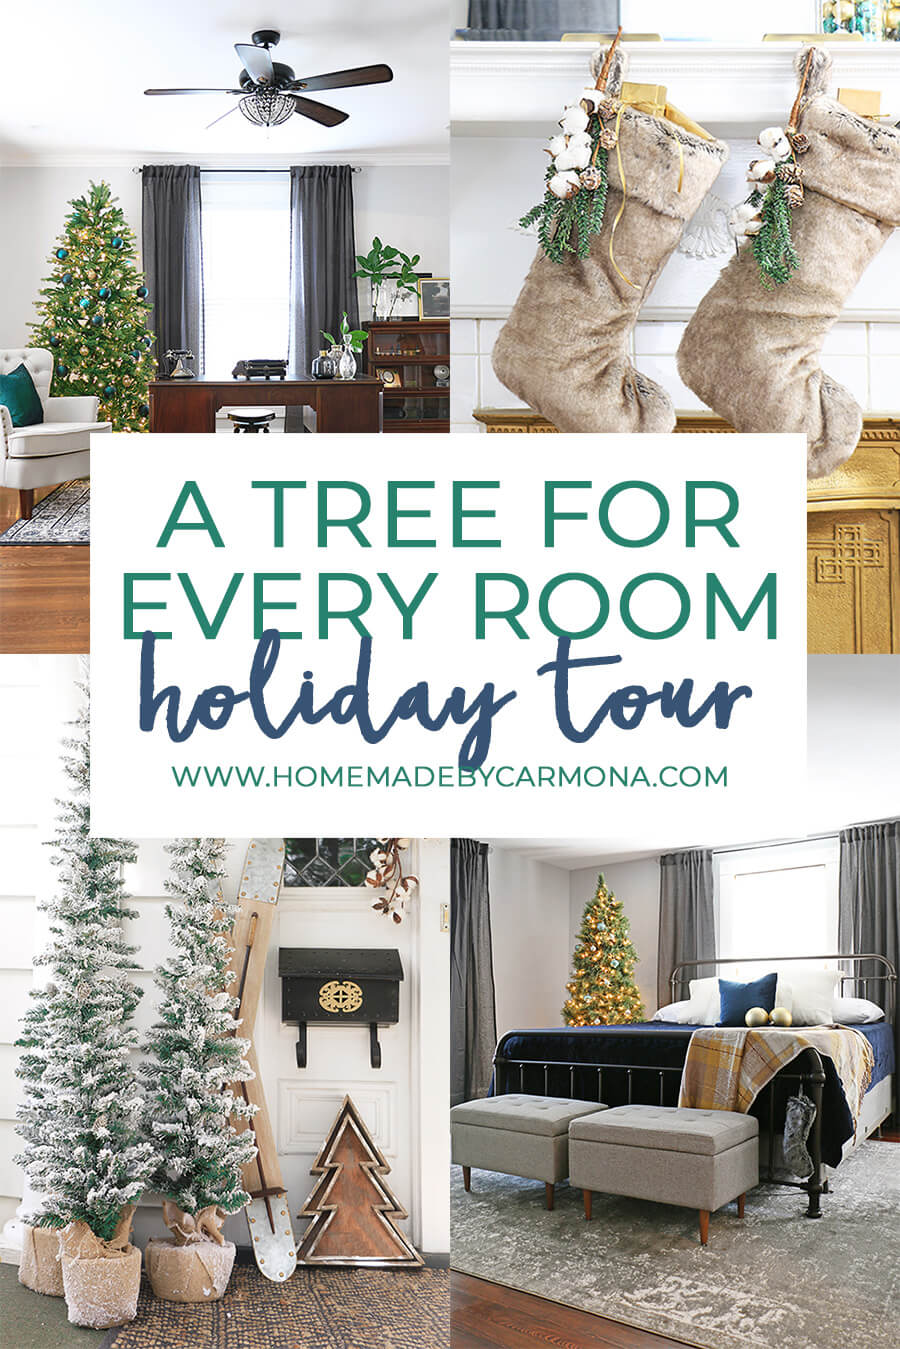 A-Tree-For-Every-Room-Holiday-Tour